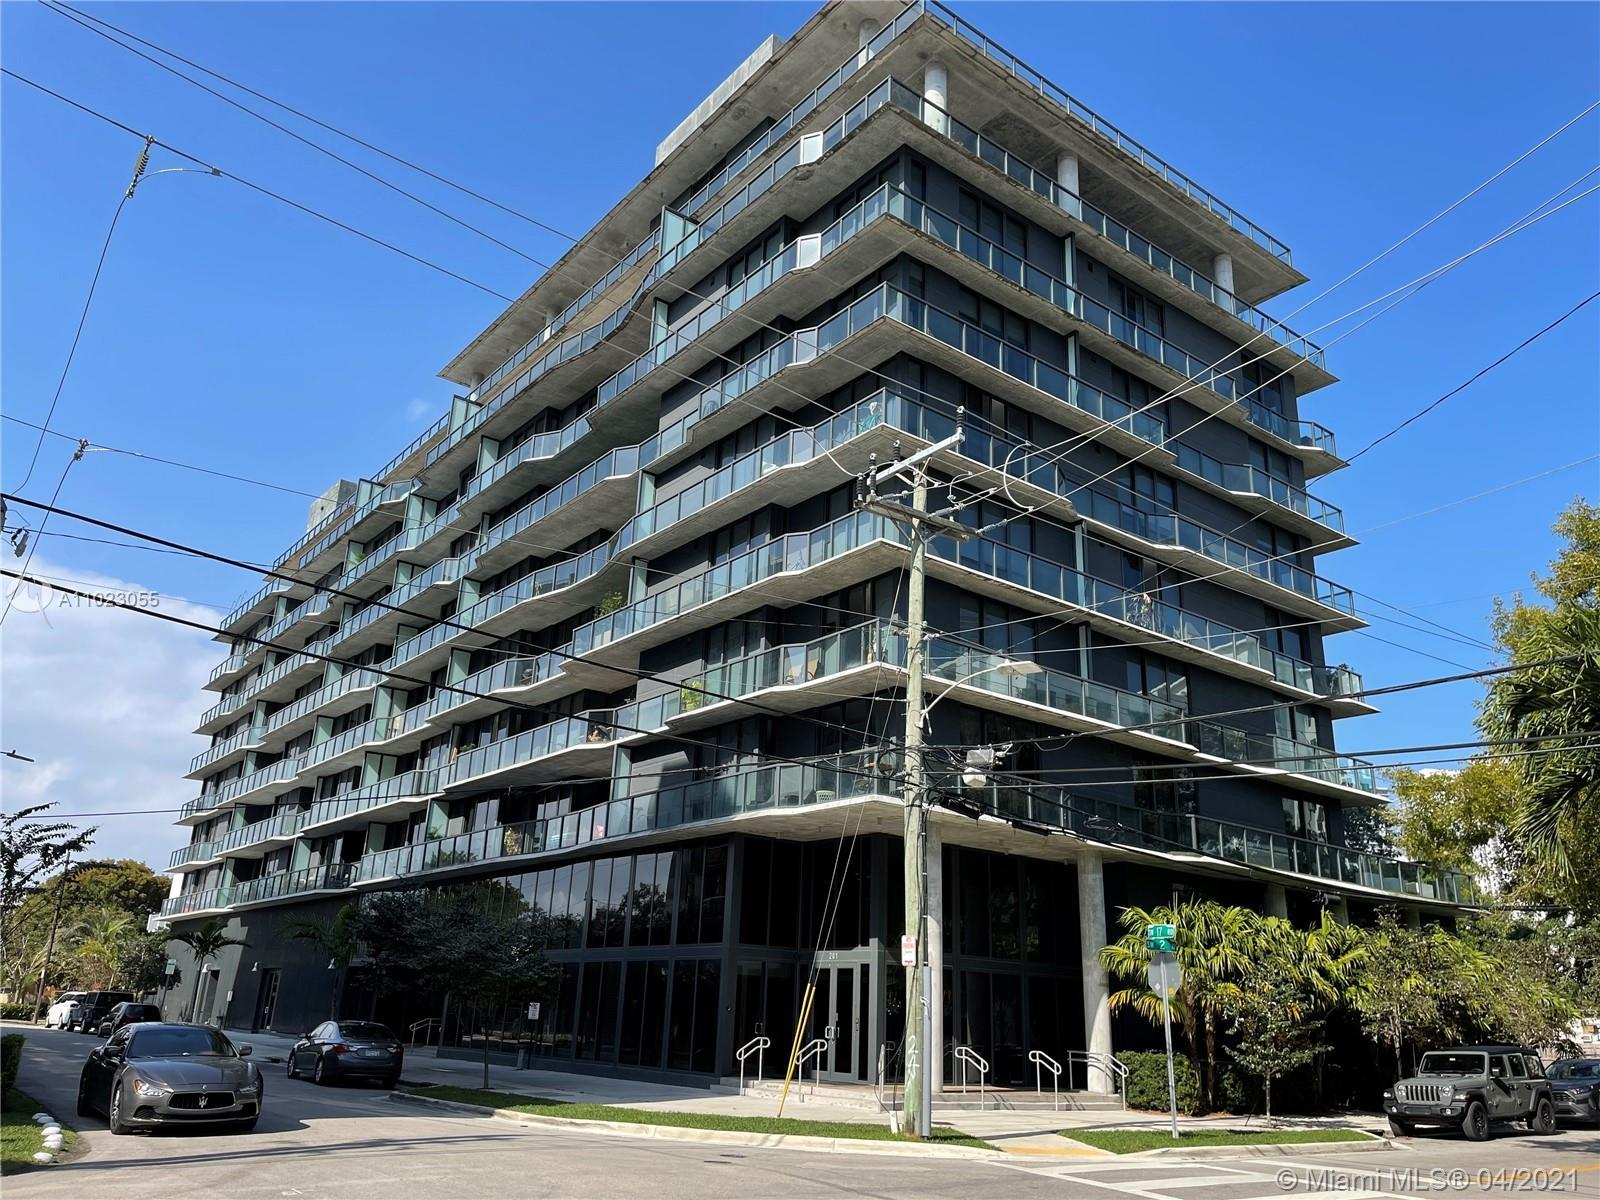 Cassa Brickell is new modern 10 story building in the Brickell area, completed in 2016, This 3 bedro